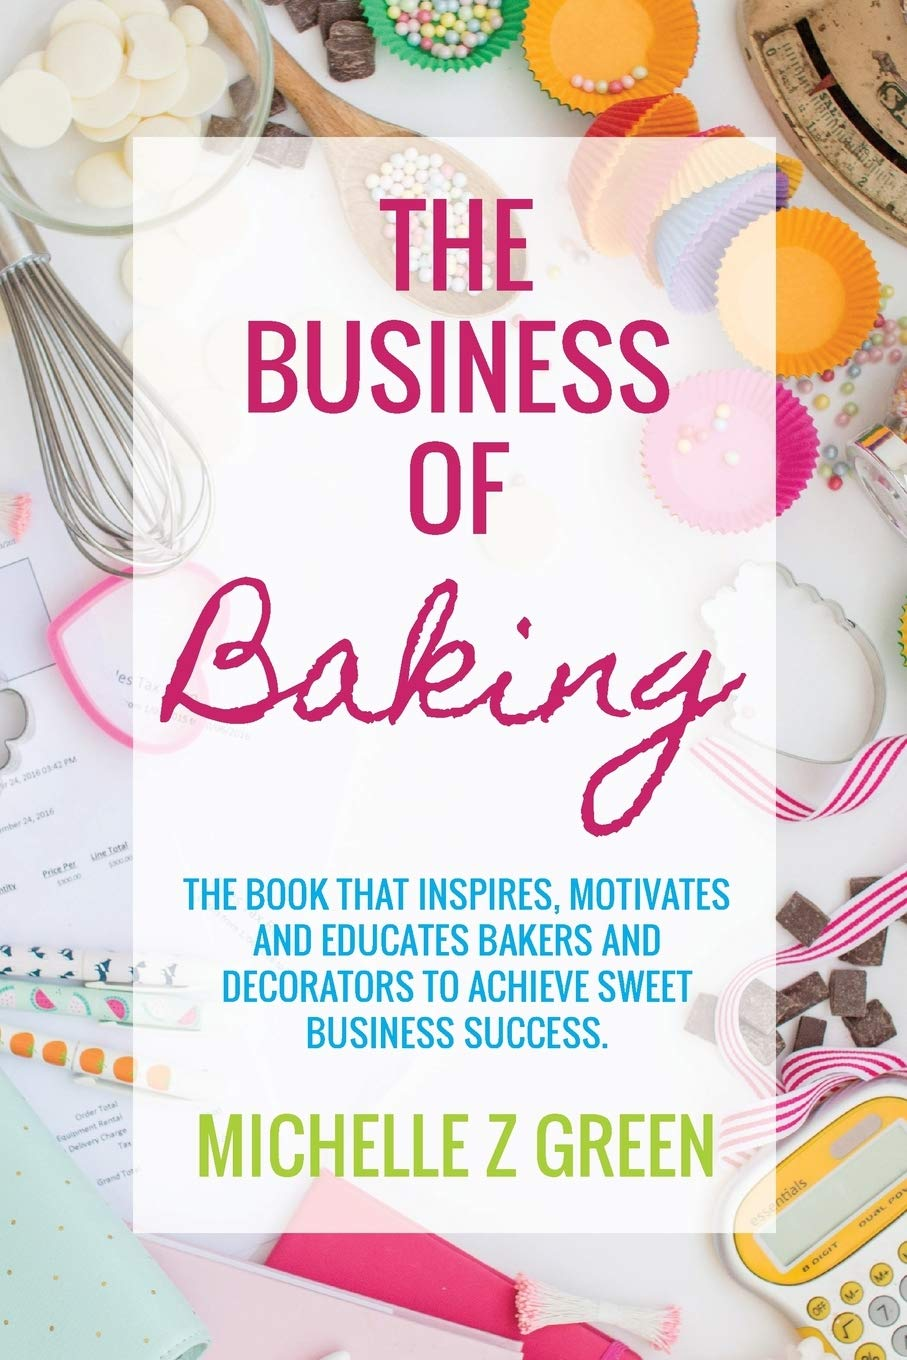 The Business of Baking: The book that inspires, motivates and educates bakers and decorators to achieve sweet business success. by Emzeegee Pty Ltd